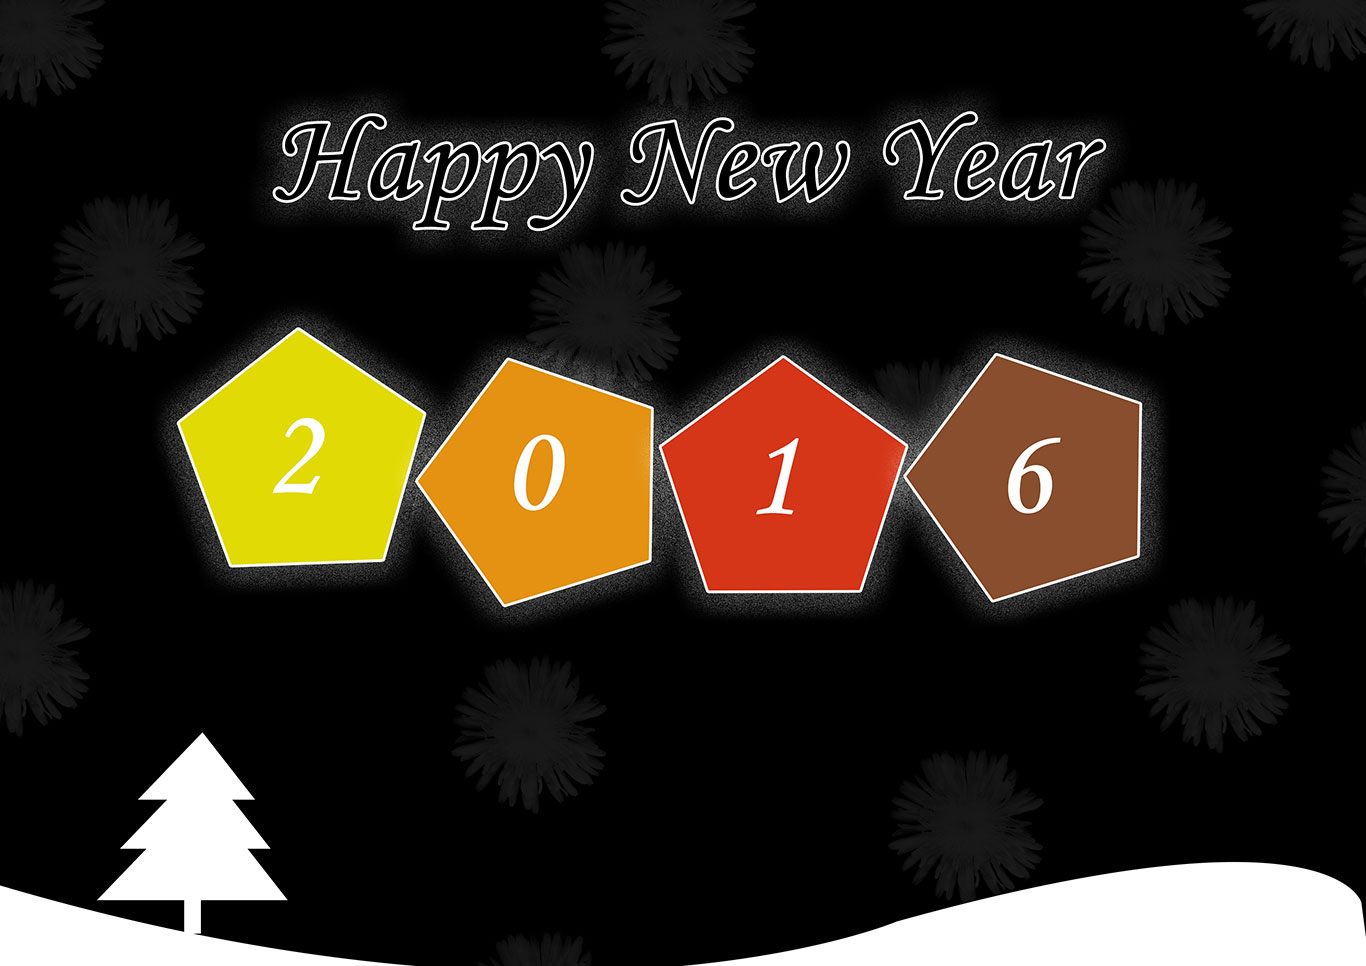 We, at AstroSage, wish you a very Happy New Year 2016!